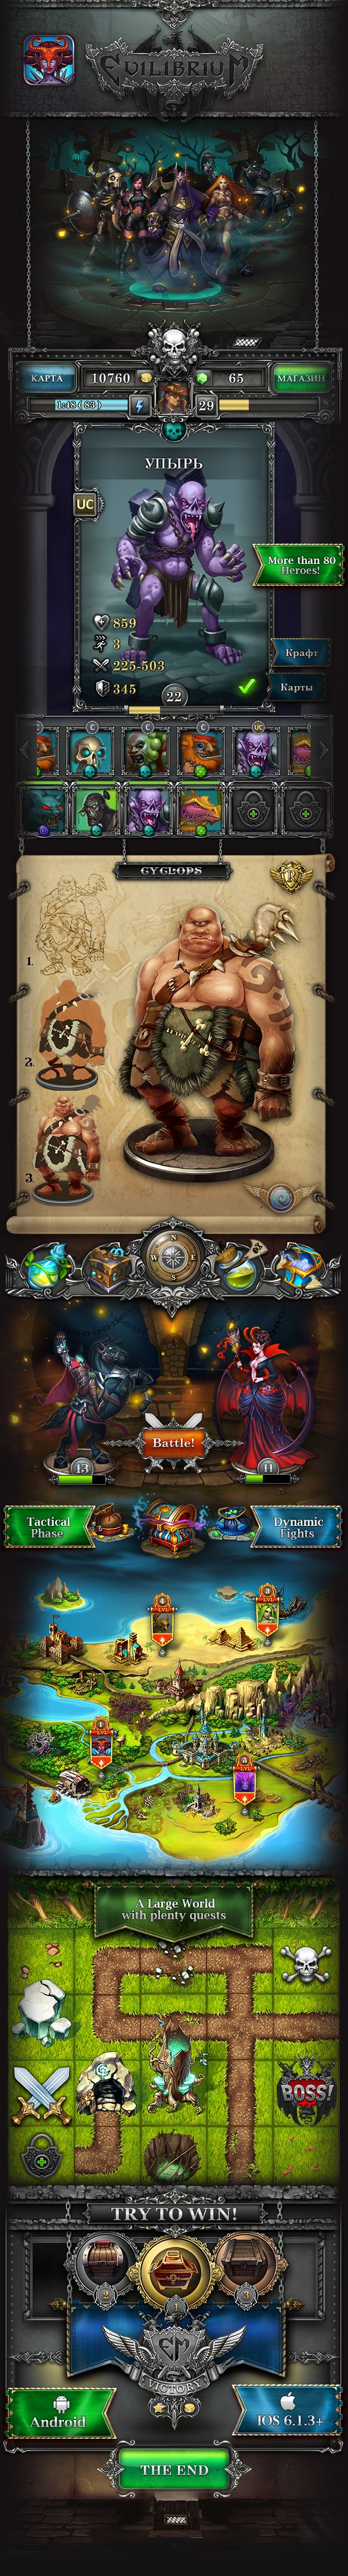 Evilibrium game ios gui mobile | Create your own roleplaying game books w/ RPG Bard: www.rpgbard.com | Pathfinder PFRPG Dungeons and Dragons ADND DND OGL d20 OSR OSRIC Warhammer 40000 40k Fantasy Roleplay WFRP Star Wars Exalted World of Darkness Dragon Age Iron Kingdoms Fate Core System Savage Worlds Shadowrun Dungeon Crawl Classics DCC Call of Cthulhu CoC Basic Role Playing BRP Traveller Battletech The One Ring TOR fantasy science fiction horror